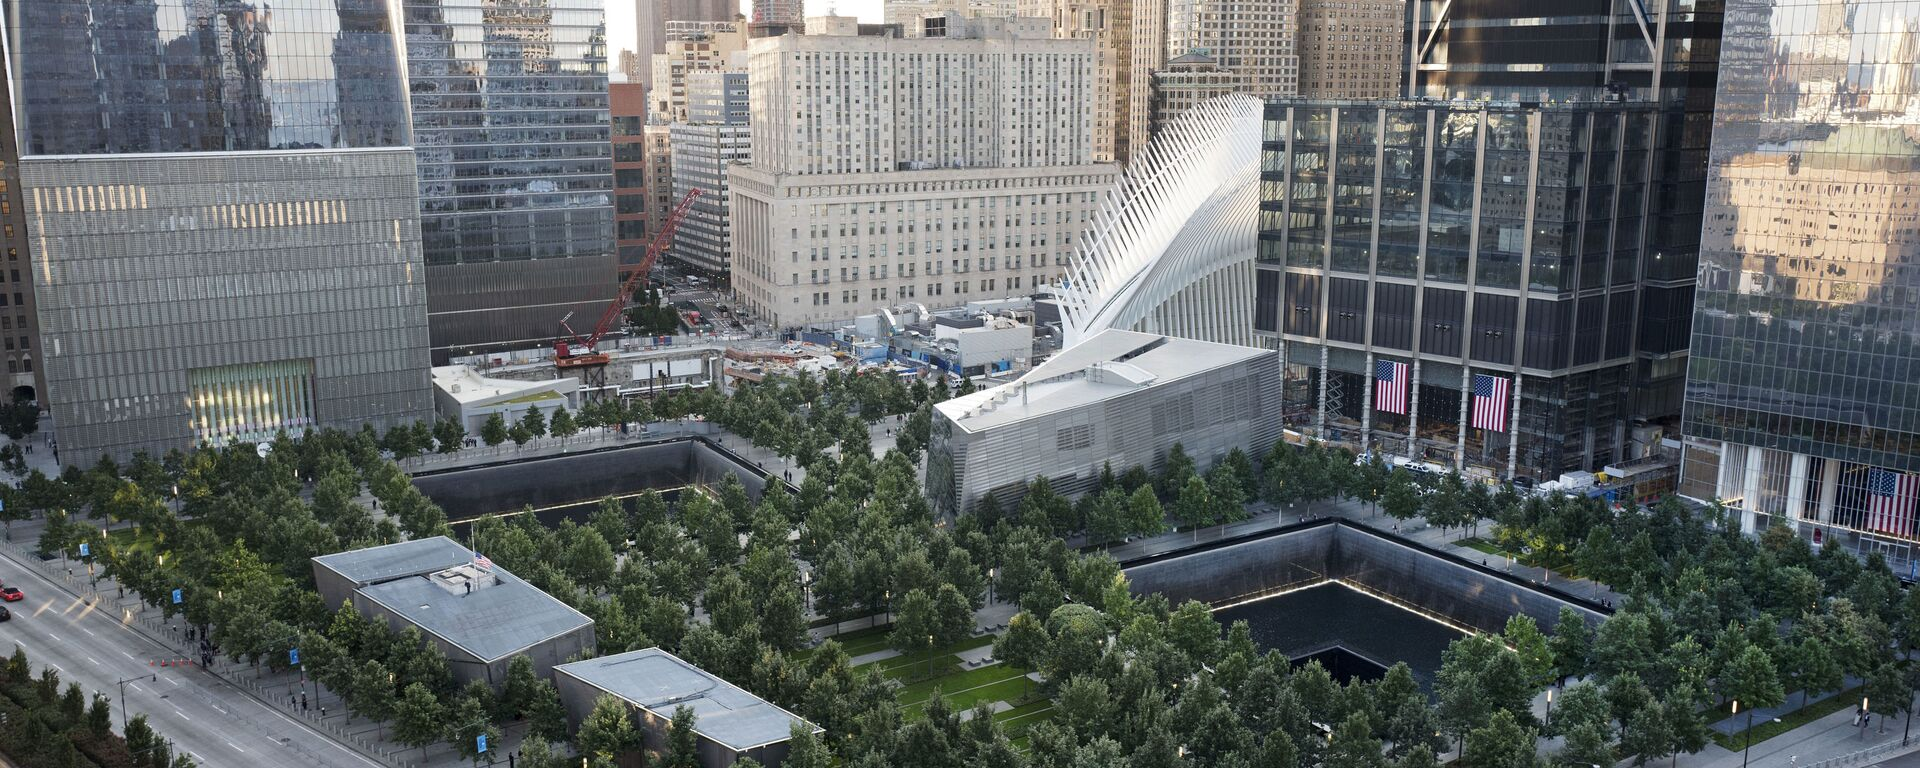 The National September 11 Memorial and Museum are set for a memorial service, Monday, Sept. 11, 2017, in New York. Thousands of 9/11 victims' relatives, survivors, rescuers and others are expected to gather Monday at the World Trade Center to remember the deadliest terror attack on American soil. Nearly 3,000 people died when hijacked planes slammed into the trade center, the Pentagon and a field near Shanksville, Pa., on Sept. 11, 2001.  - Sputnik International, 1920, 08.09.2021